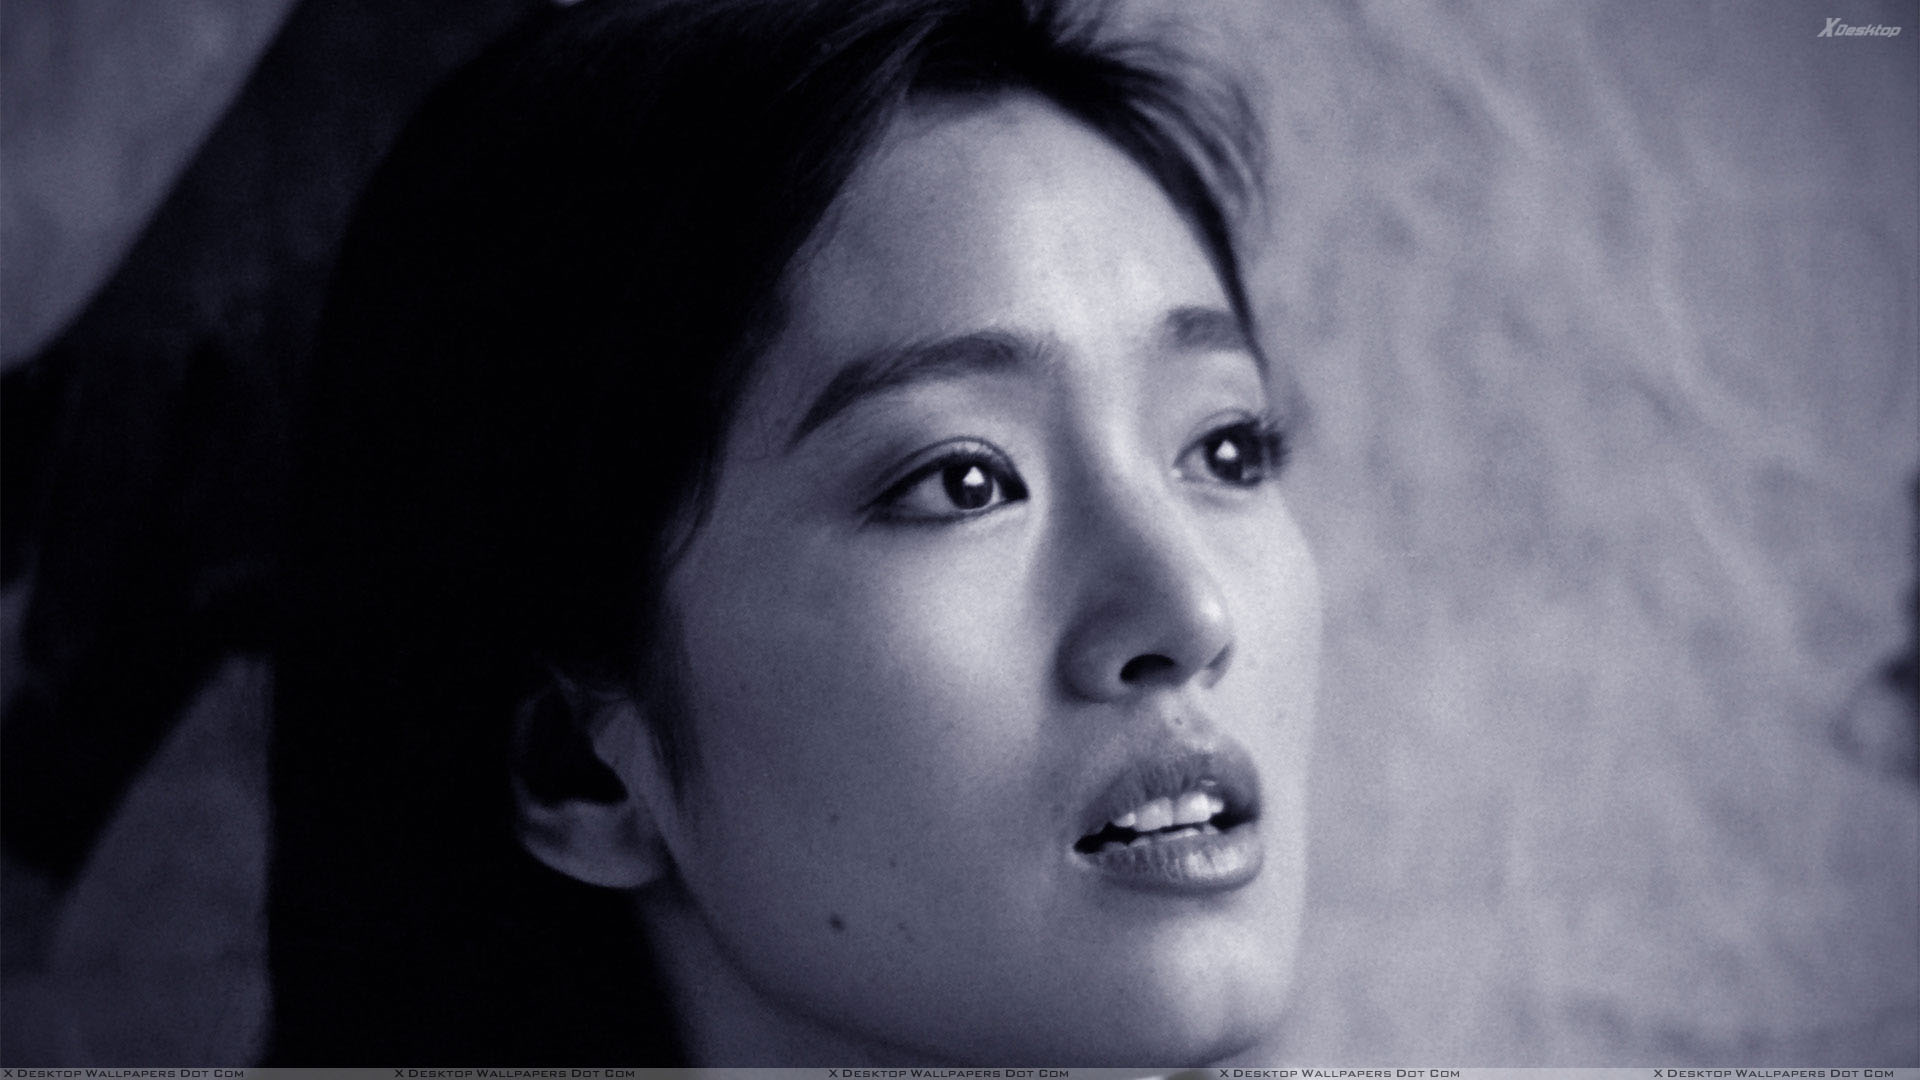 You are viewing wallpaper titled gong li black and white sad side face